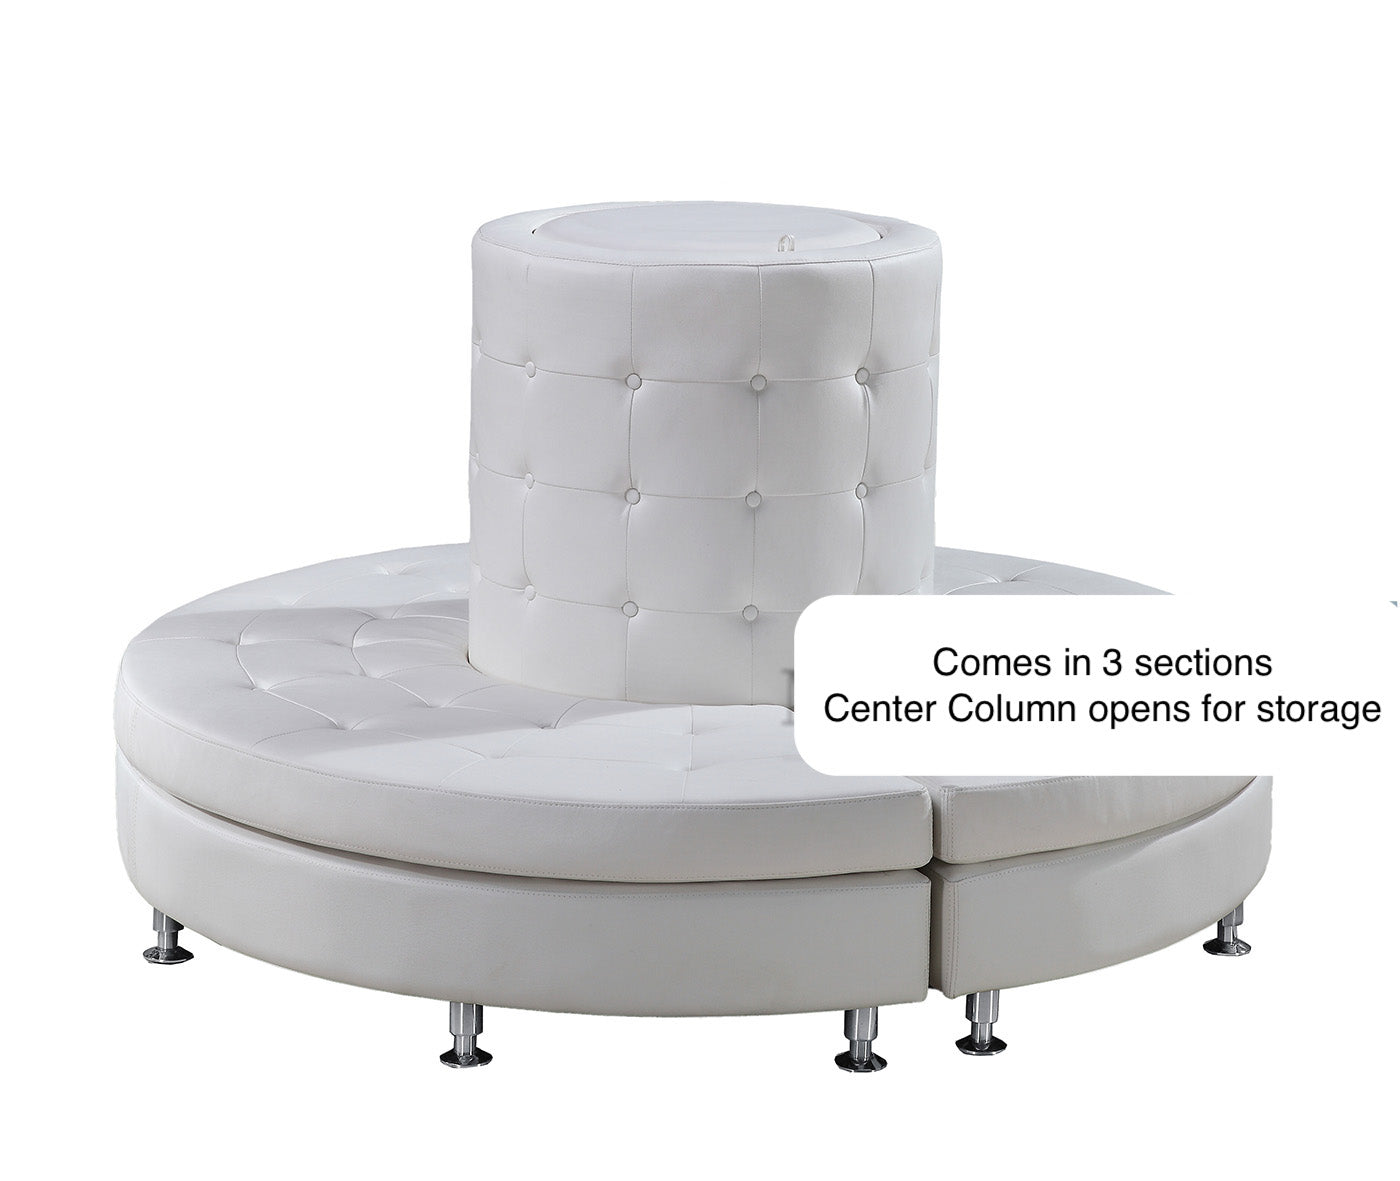 Sofa Round with Center